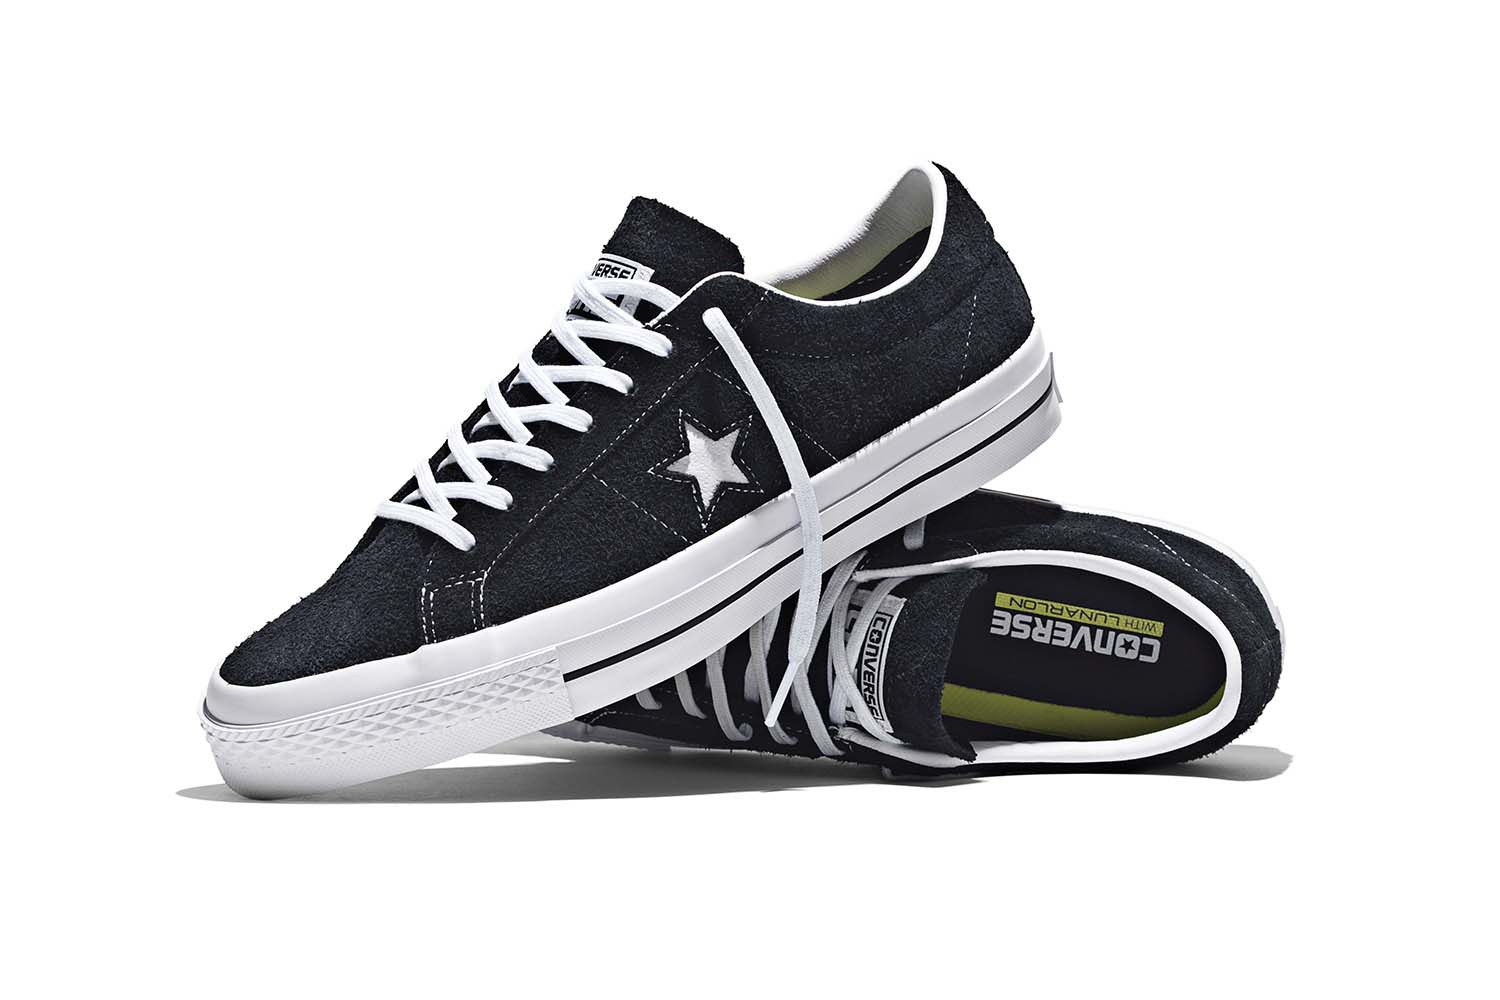 converse one star images